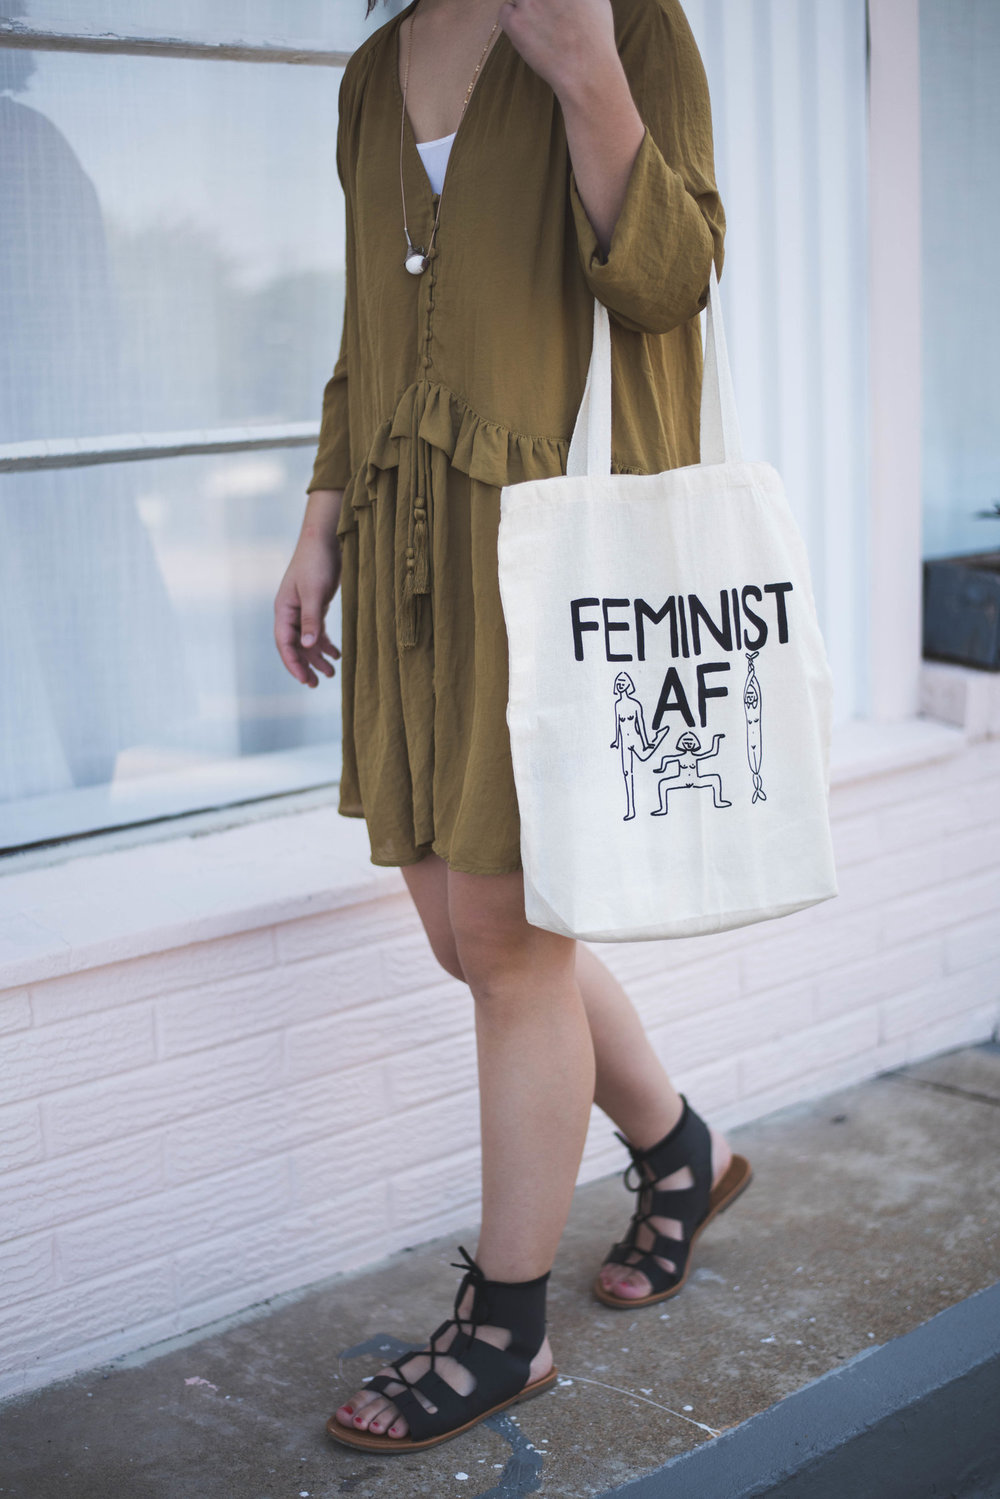 Feminist AF Tote Bag  - Paris Woodhull Illustrations • $15